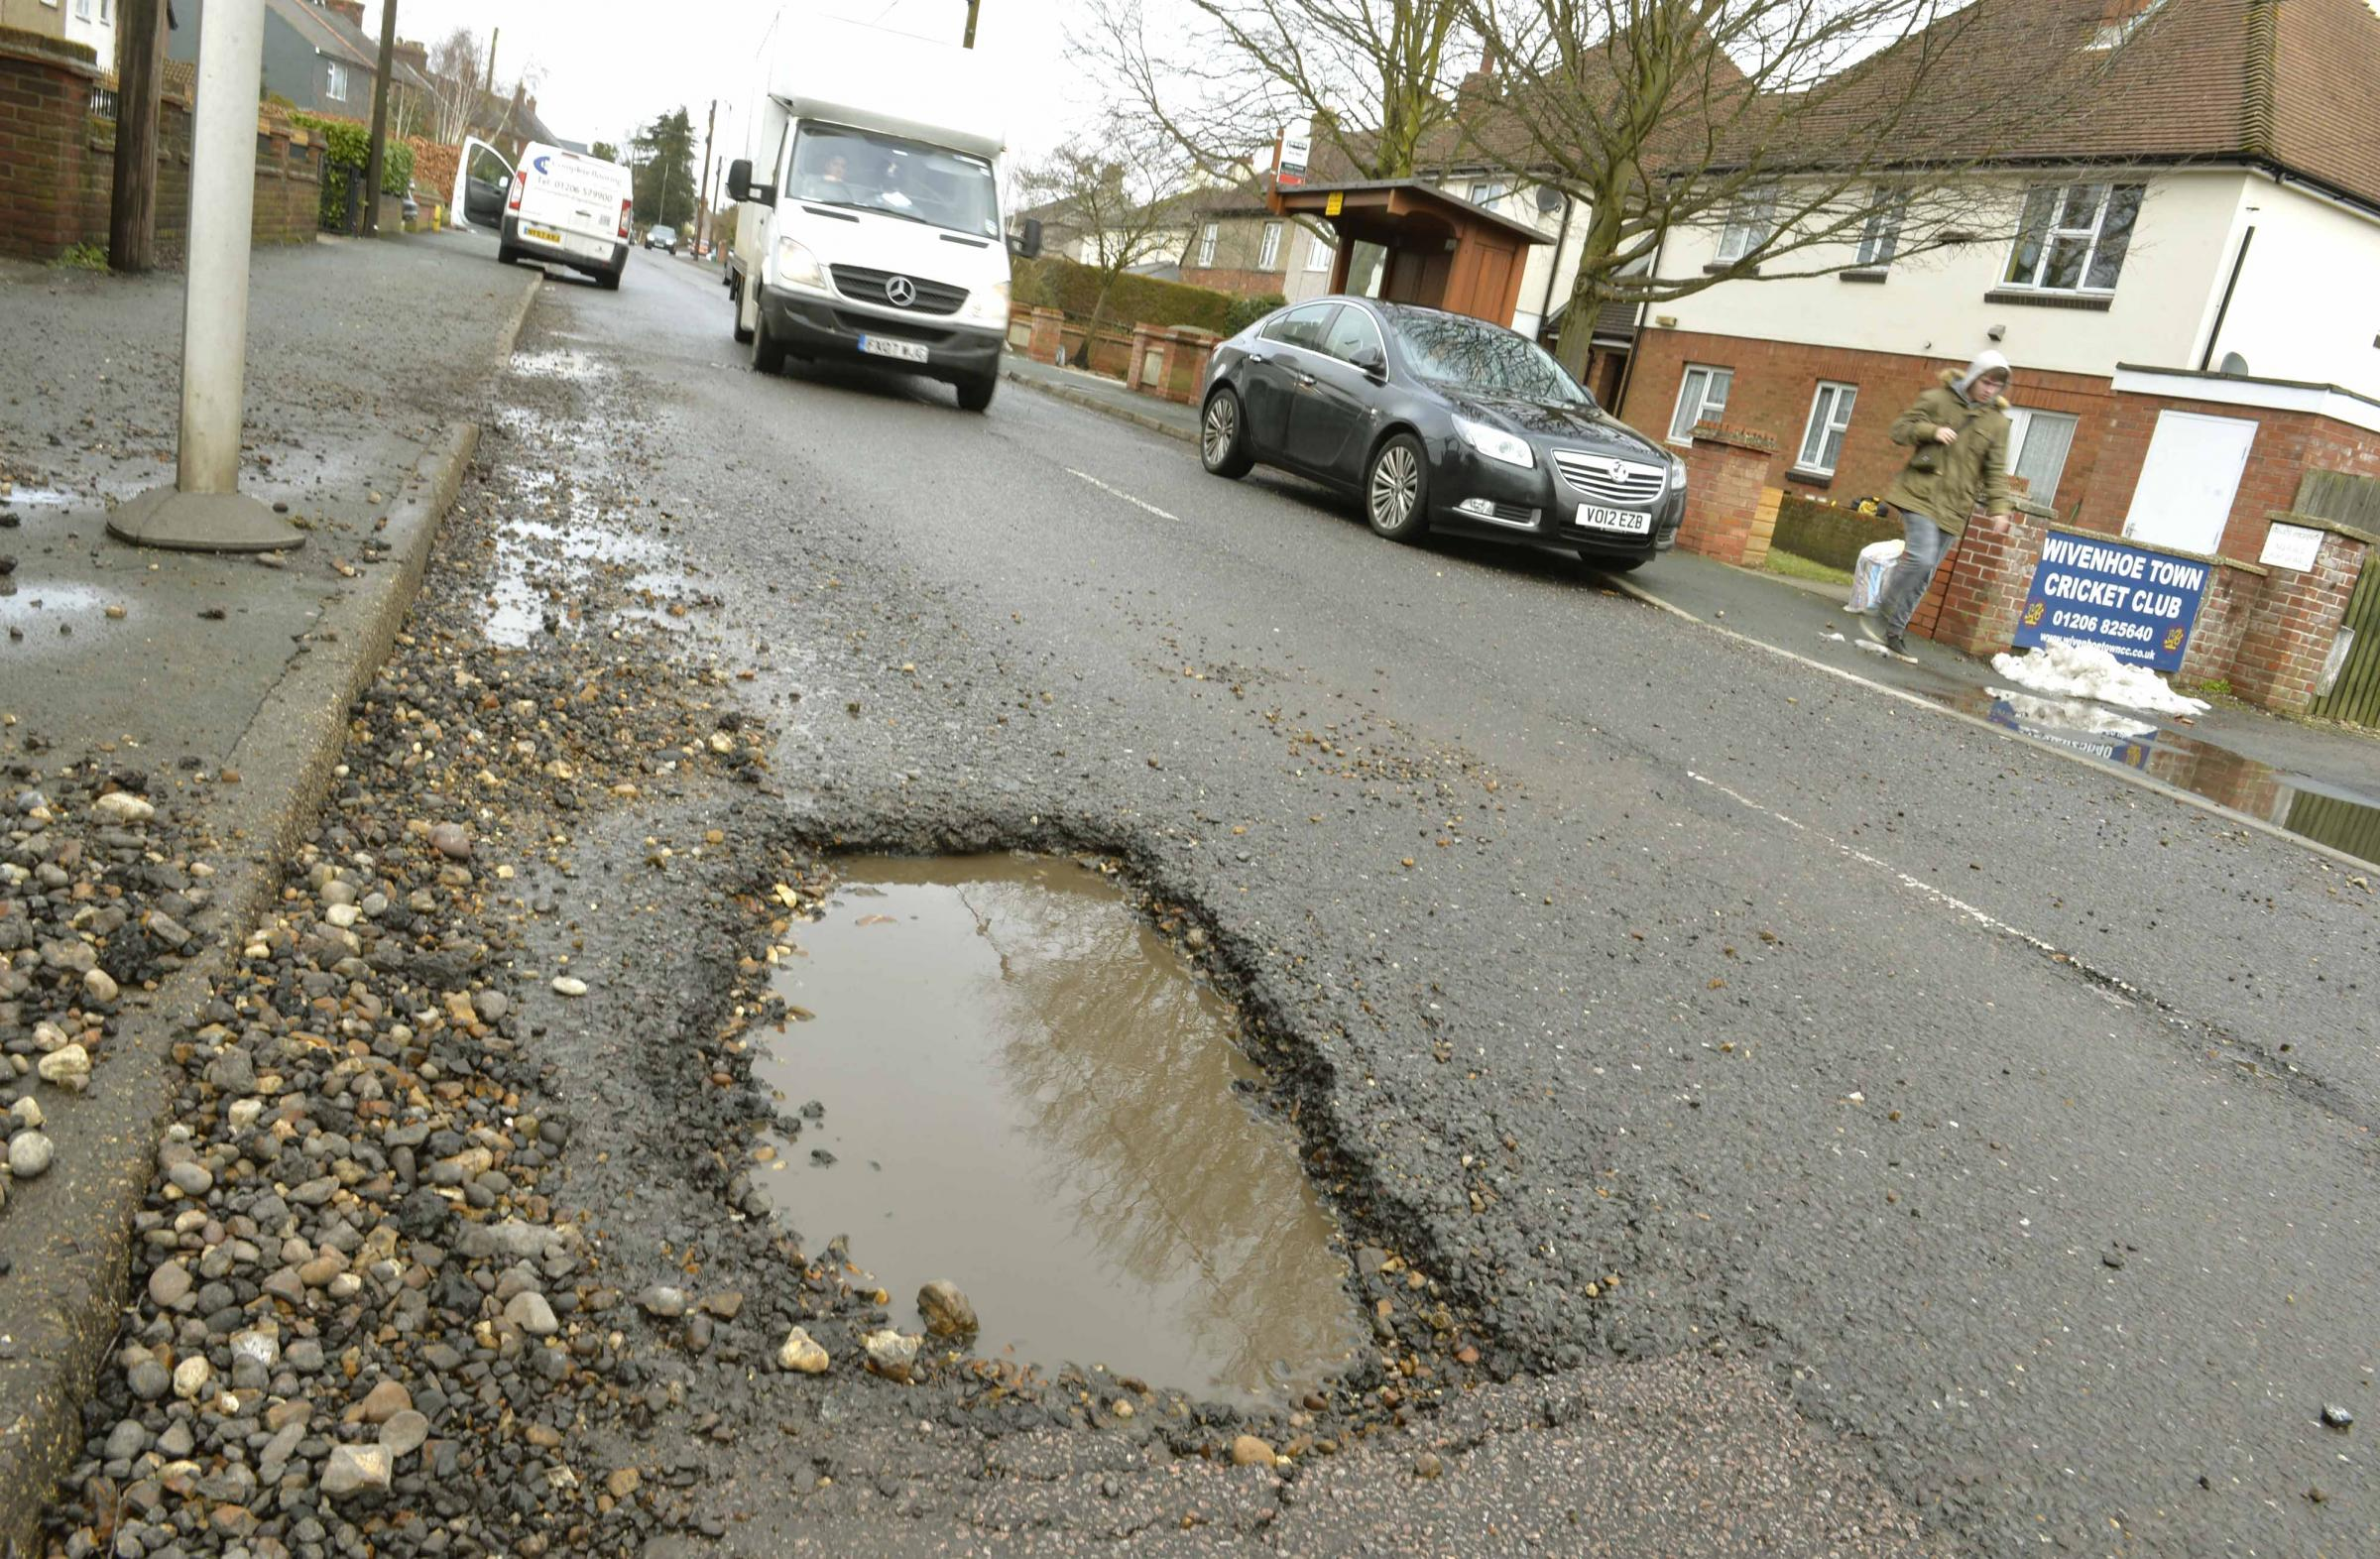 Essex to receive £10million from Government to fix roads